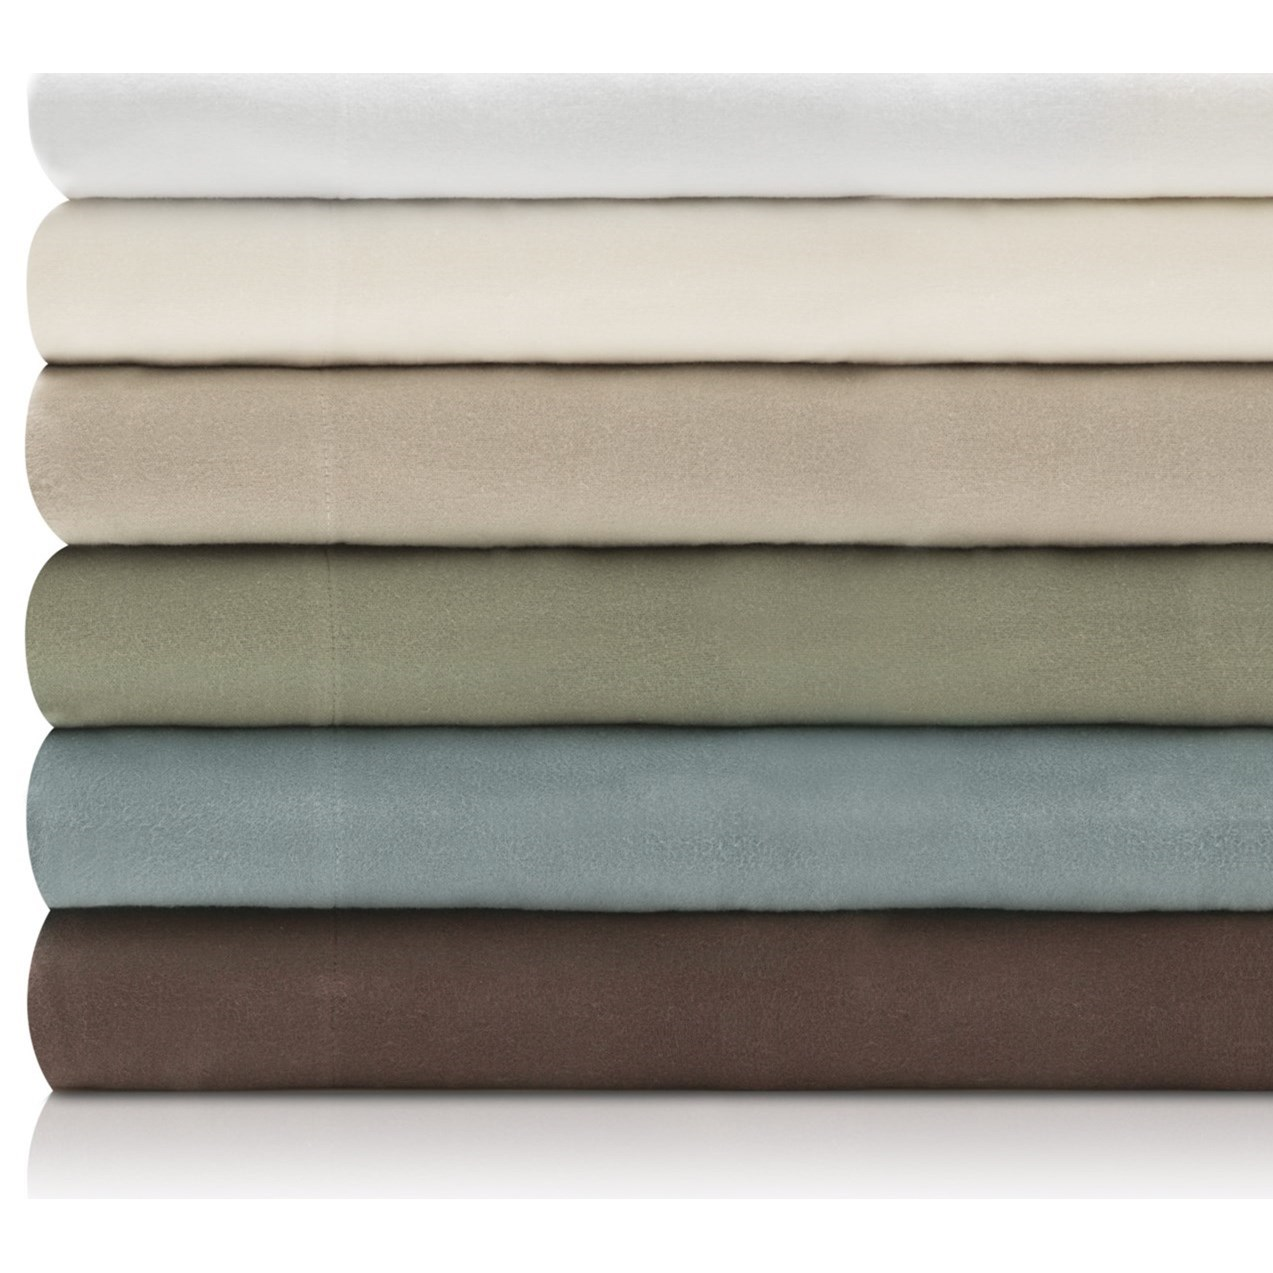 Malouf Portuguese Flannel King Woven™ Portuguese Flannel Pillowcases  - Item Number: WO19KKIVFC